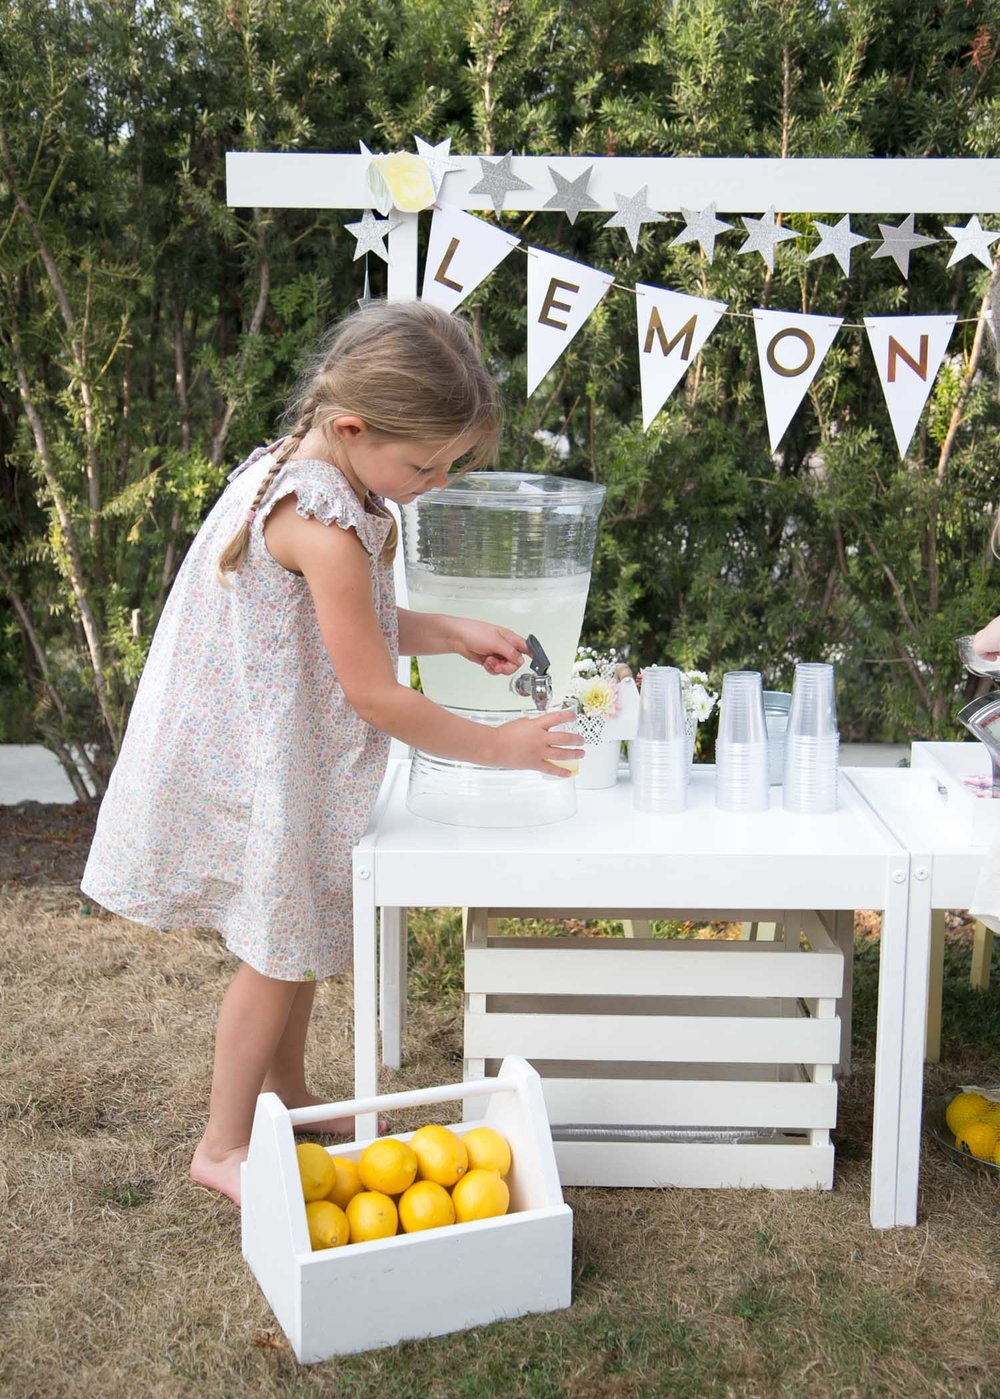 Noelle filling up lemonade